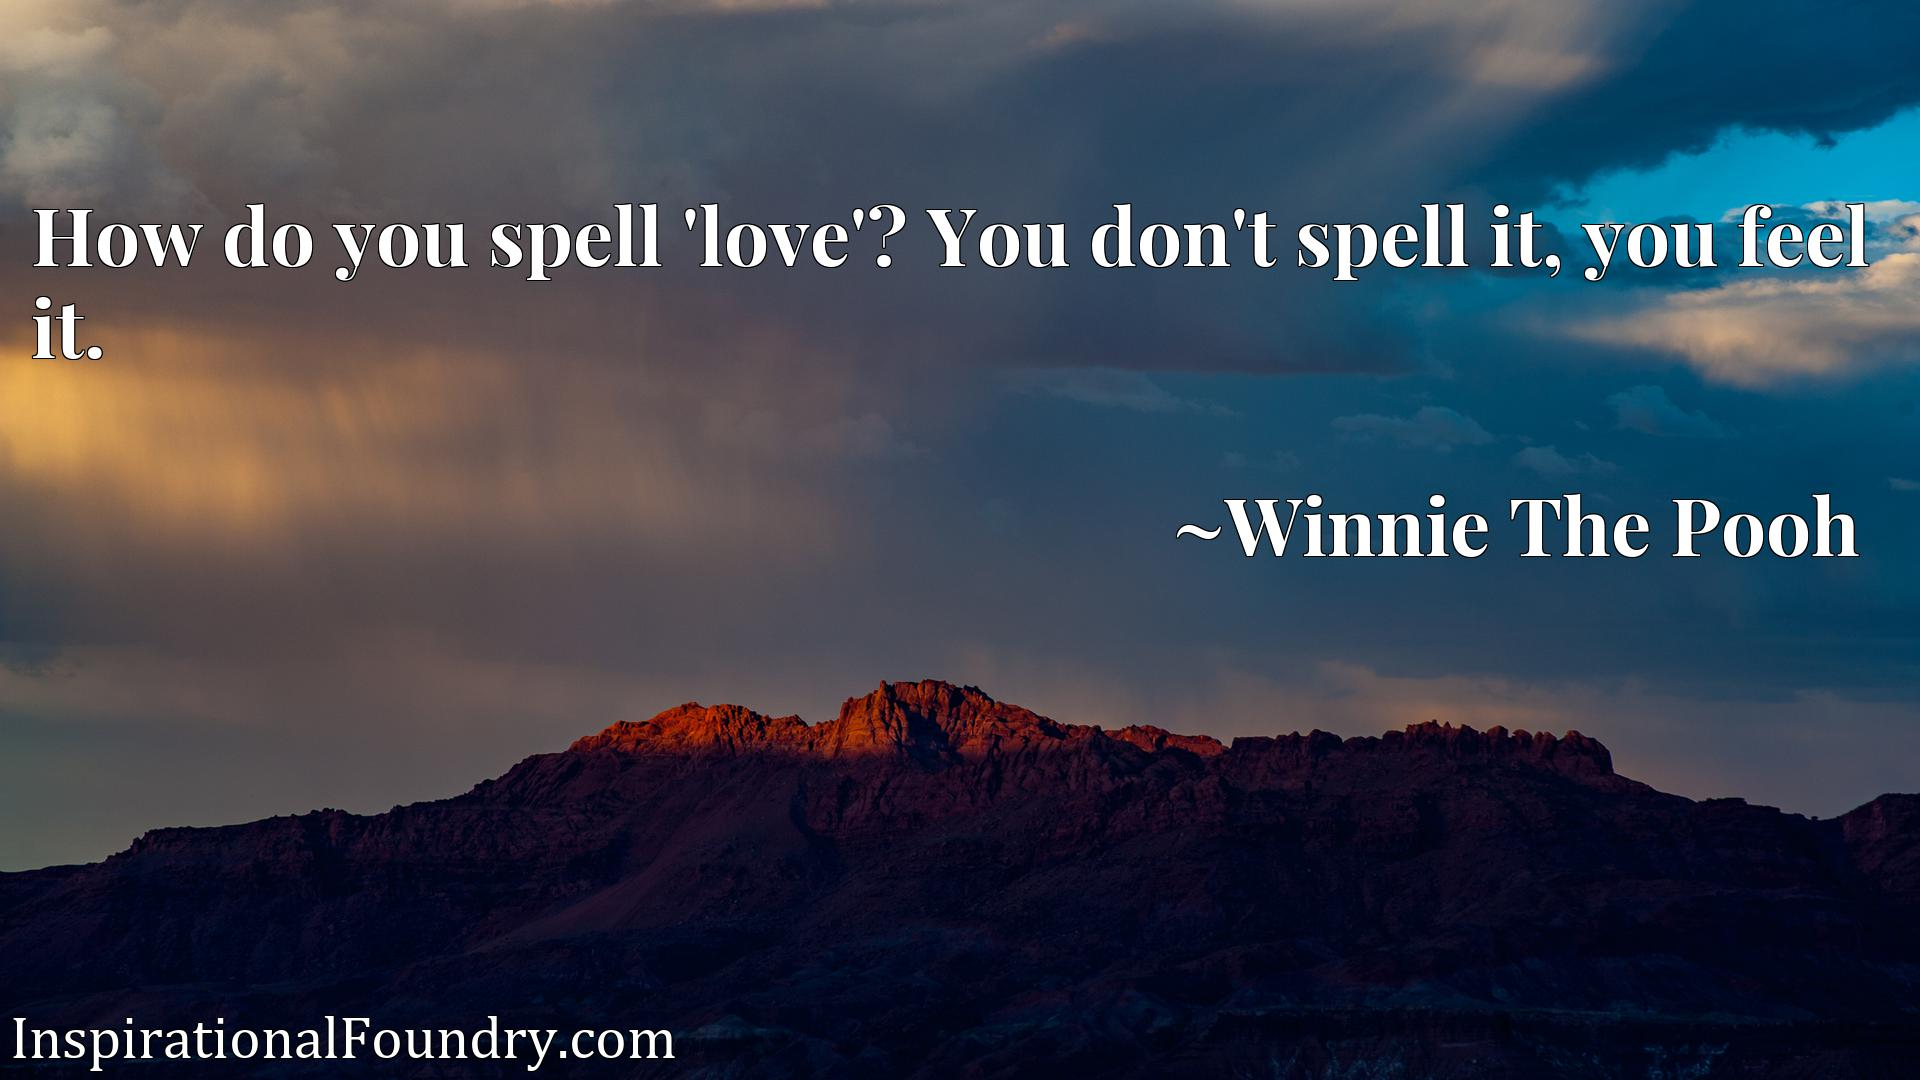 How do you spell 'love'? You don't spell it, you feel it.